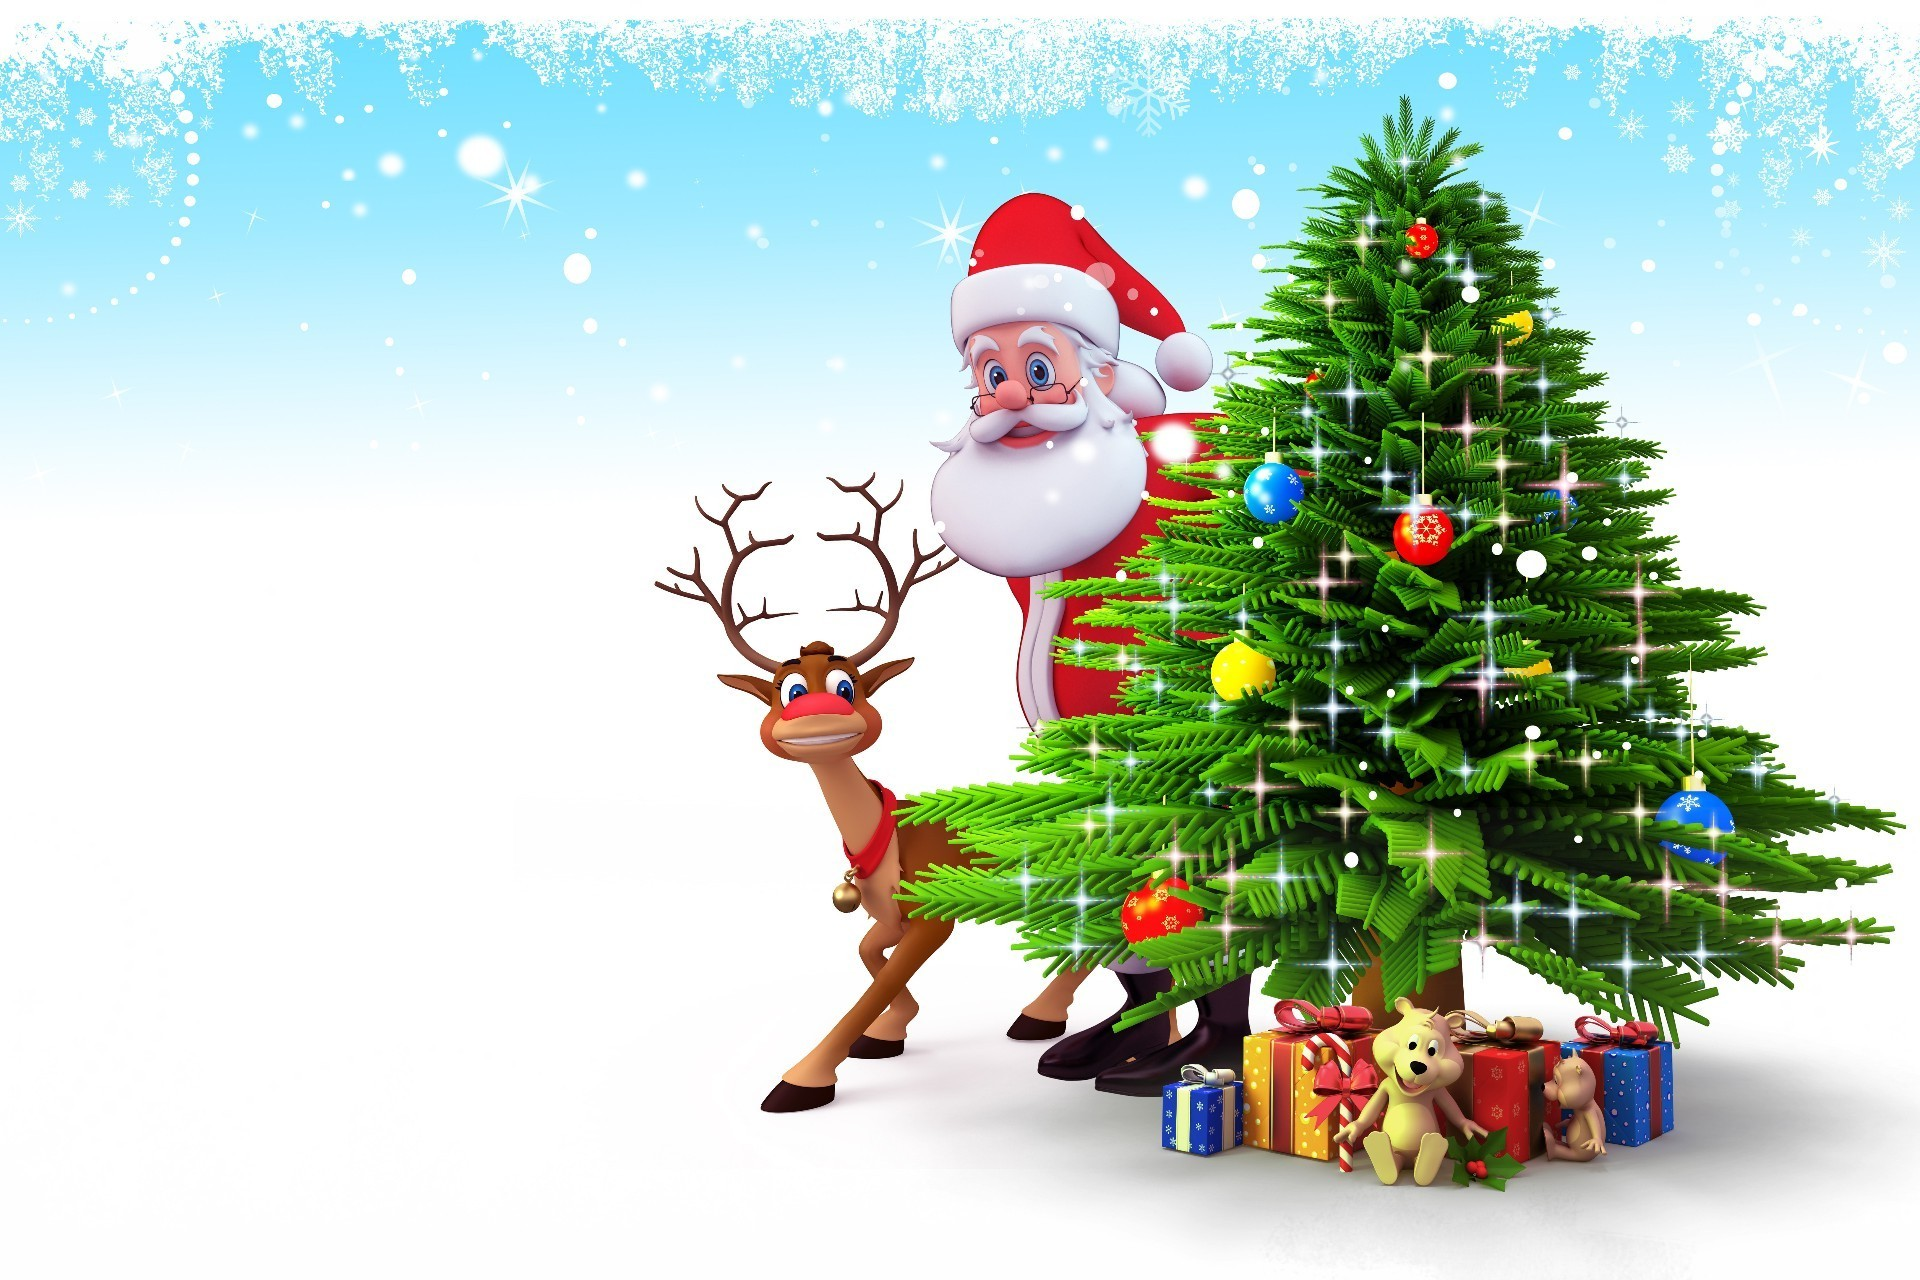 Santa Claus With A Reindeer Behind Christmas Tree With Gifts